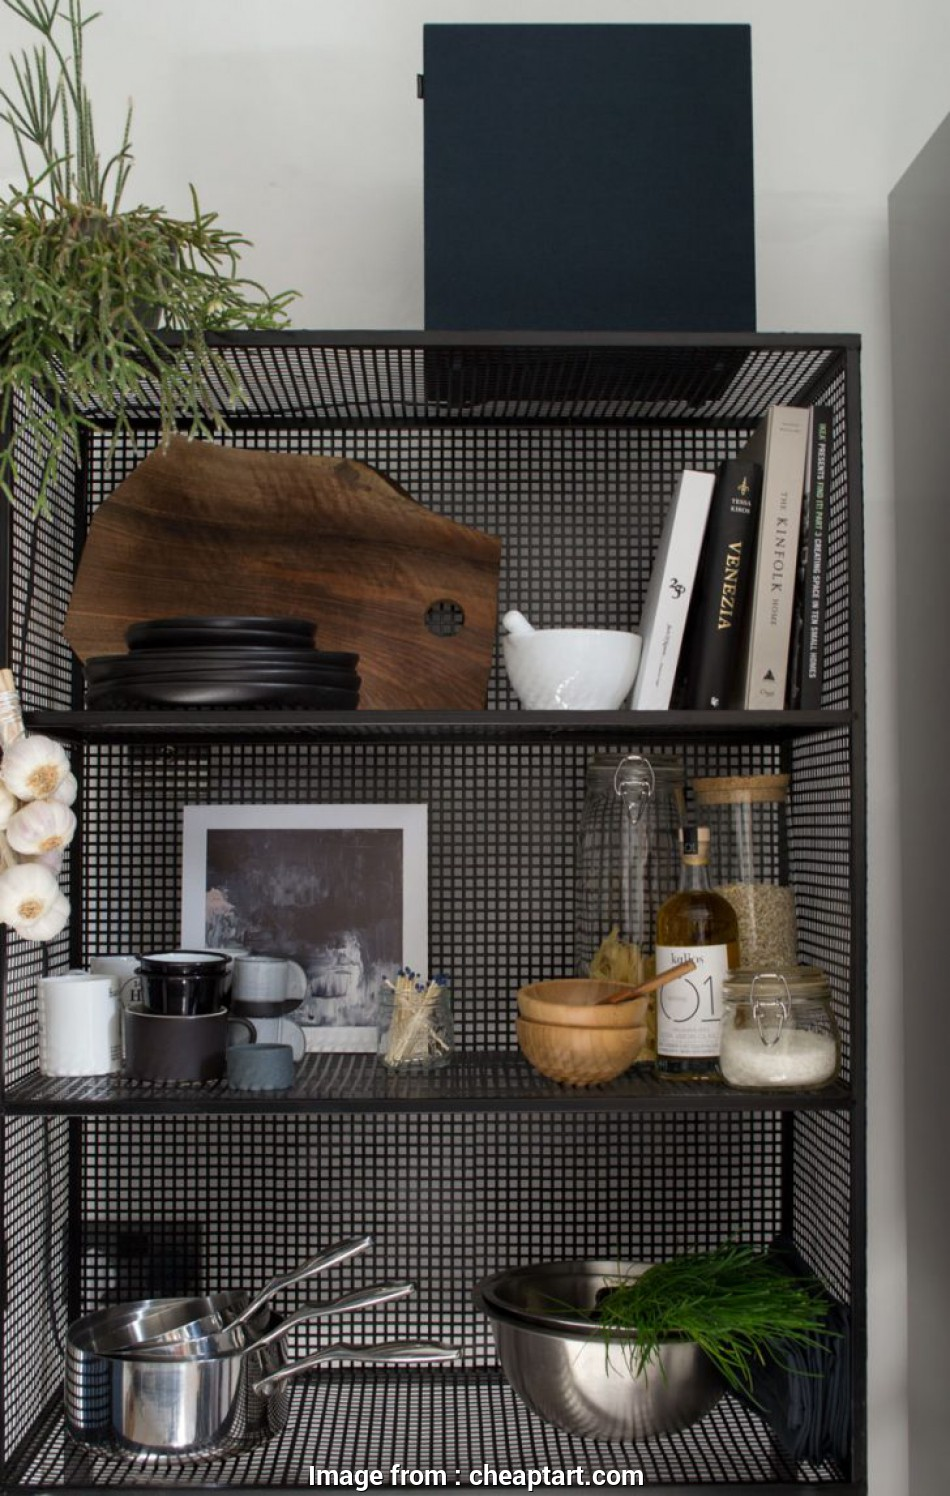 tall narrow wire shelving Kitchen Cabinet: Small Metal Shelf Unit Small Wire Shelving Unit Kitchen Rack Chrome Wire Shelving Tall Narrow Wire Shelving Top Kitchen Cabinet: Small Metal Shelf Unit Small Wire Shelving Unit Kitchen Rack Chrome Wire Shelving Collections